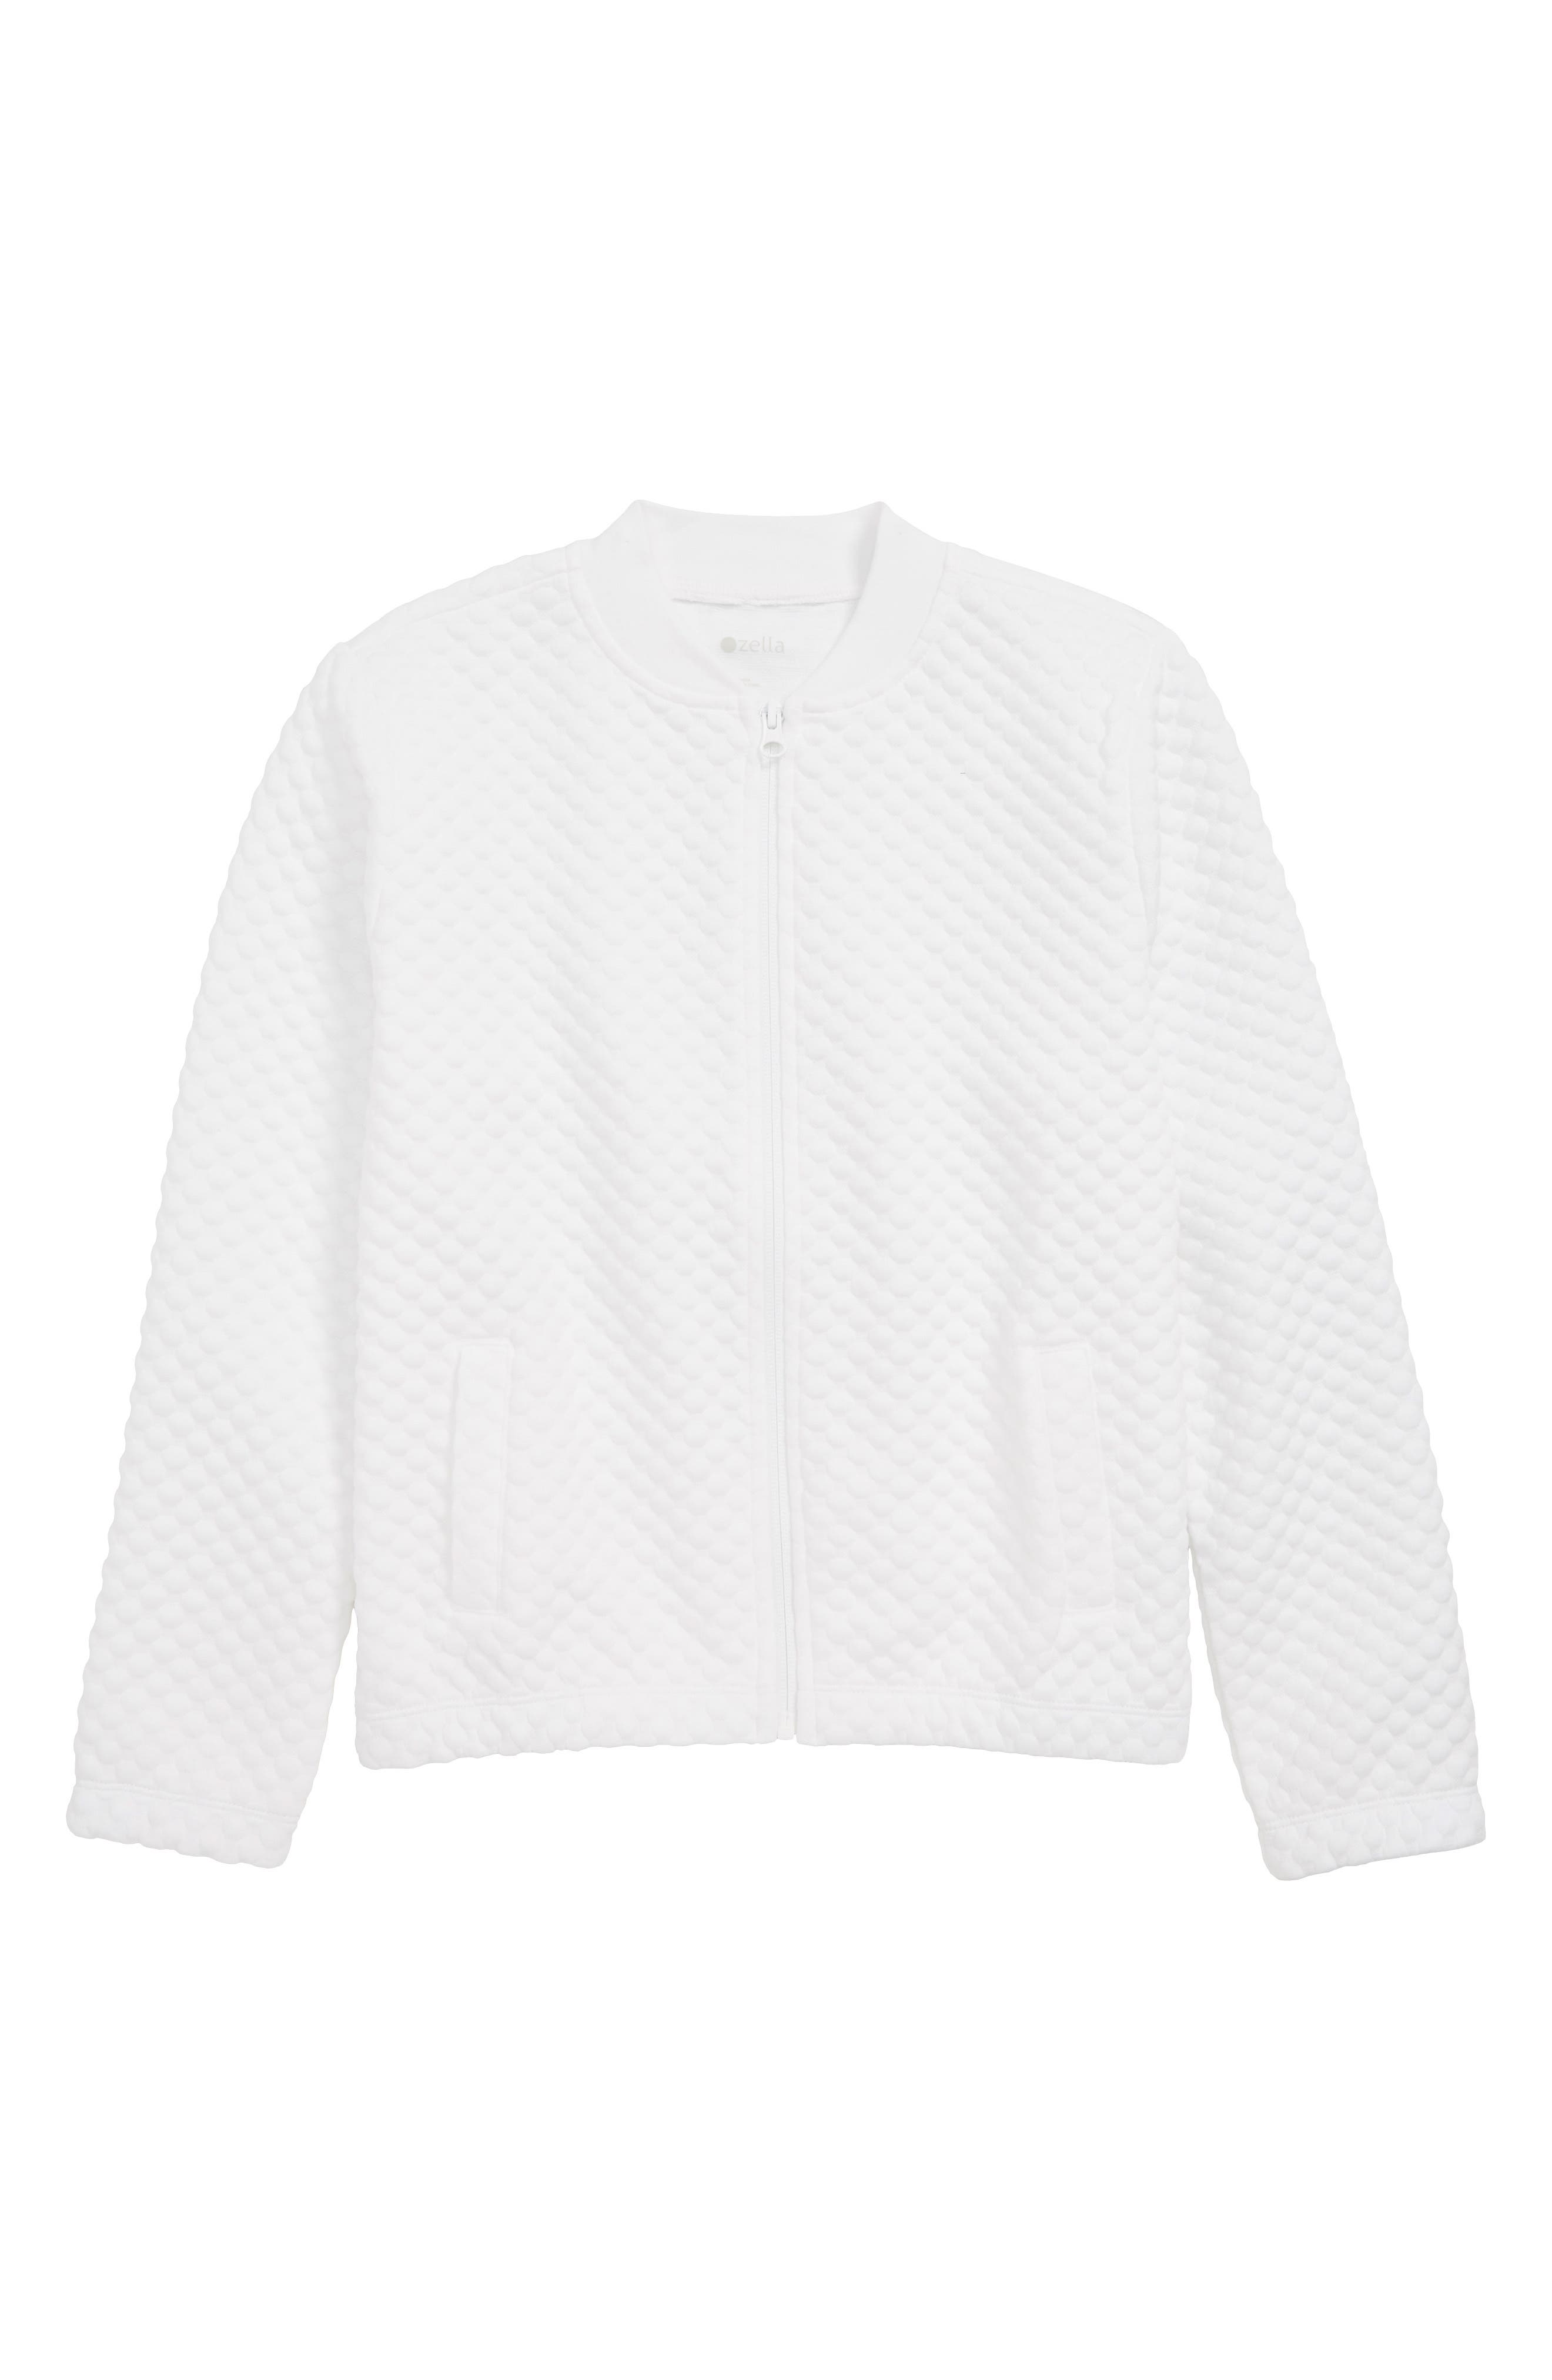 ZELLA GIRL,                             Quilted Bomber Jacket,                             Main thumbnail 1, color,                             WHITE